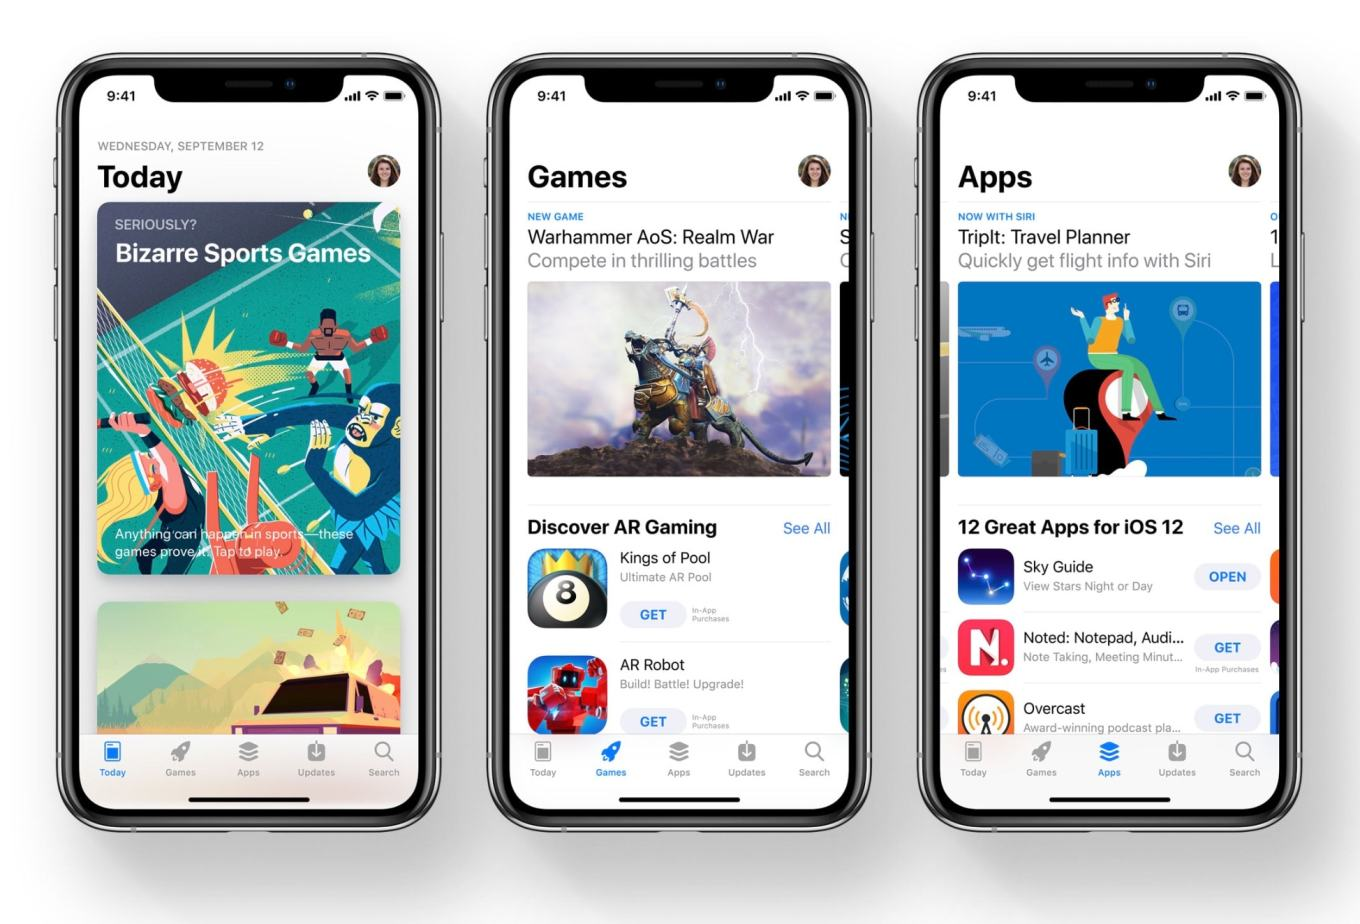 Apple denies report of App Store search monopoly | Cult of Mac